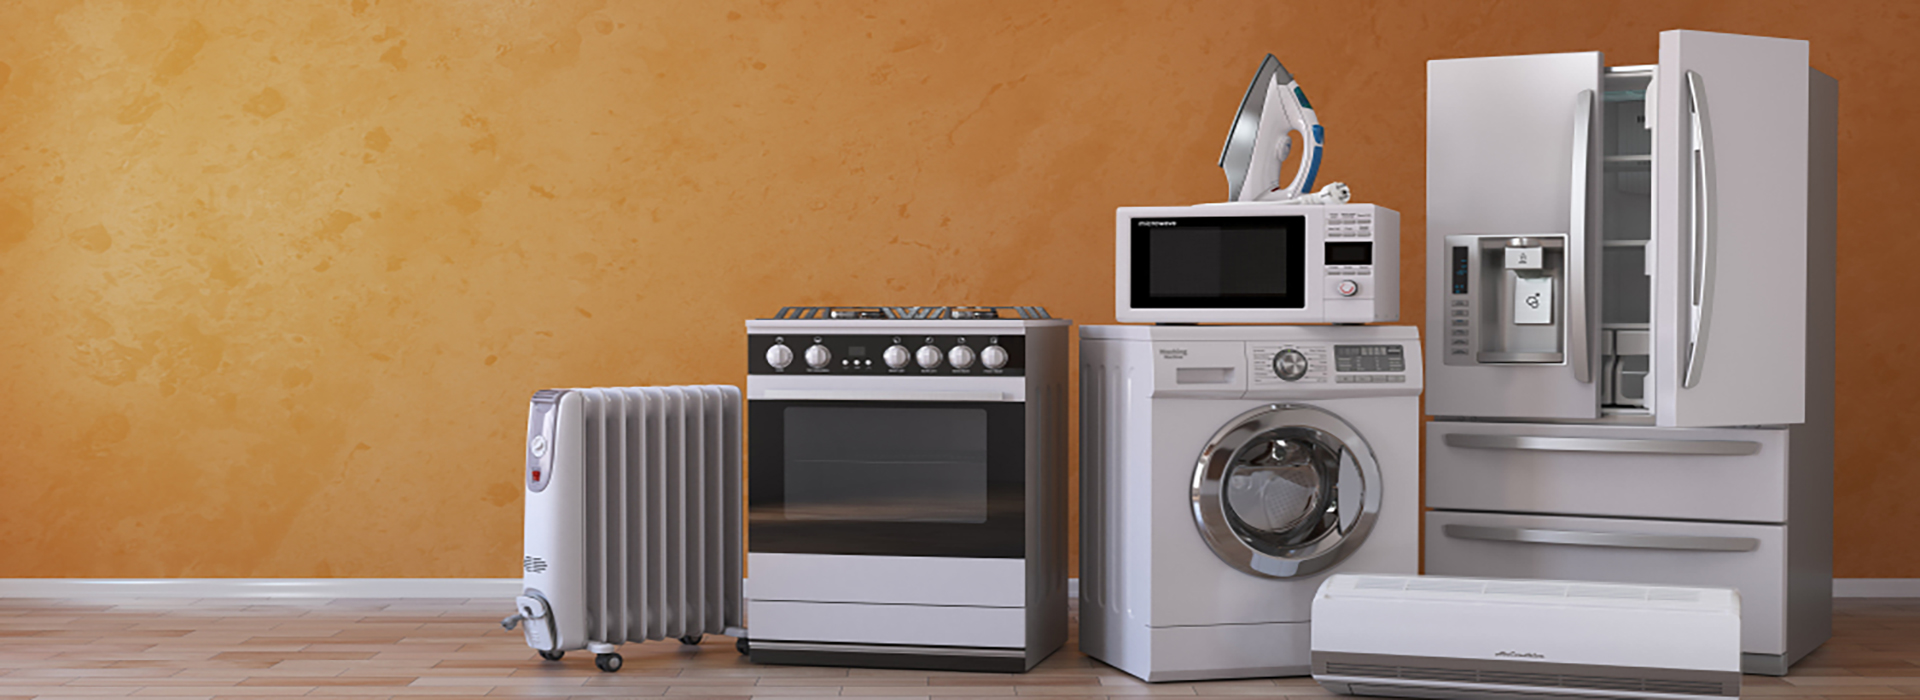 Household Appliance Industry